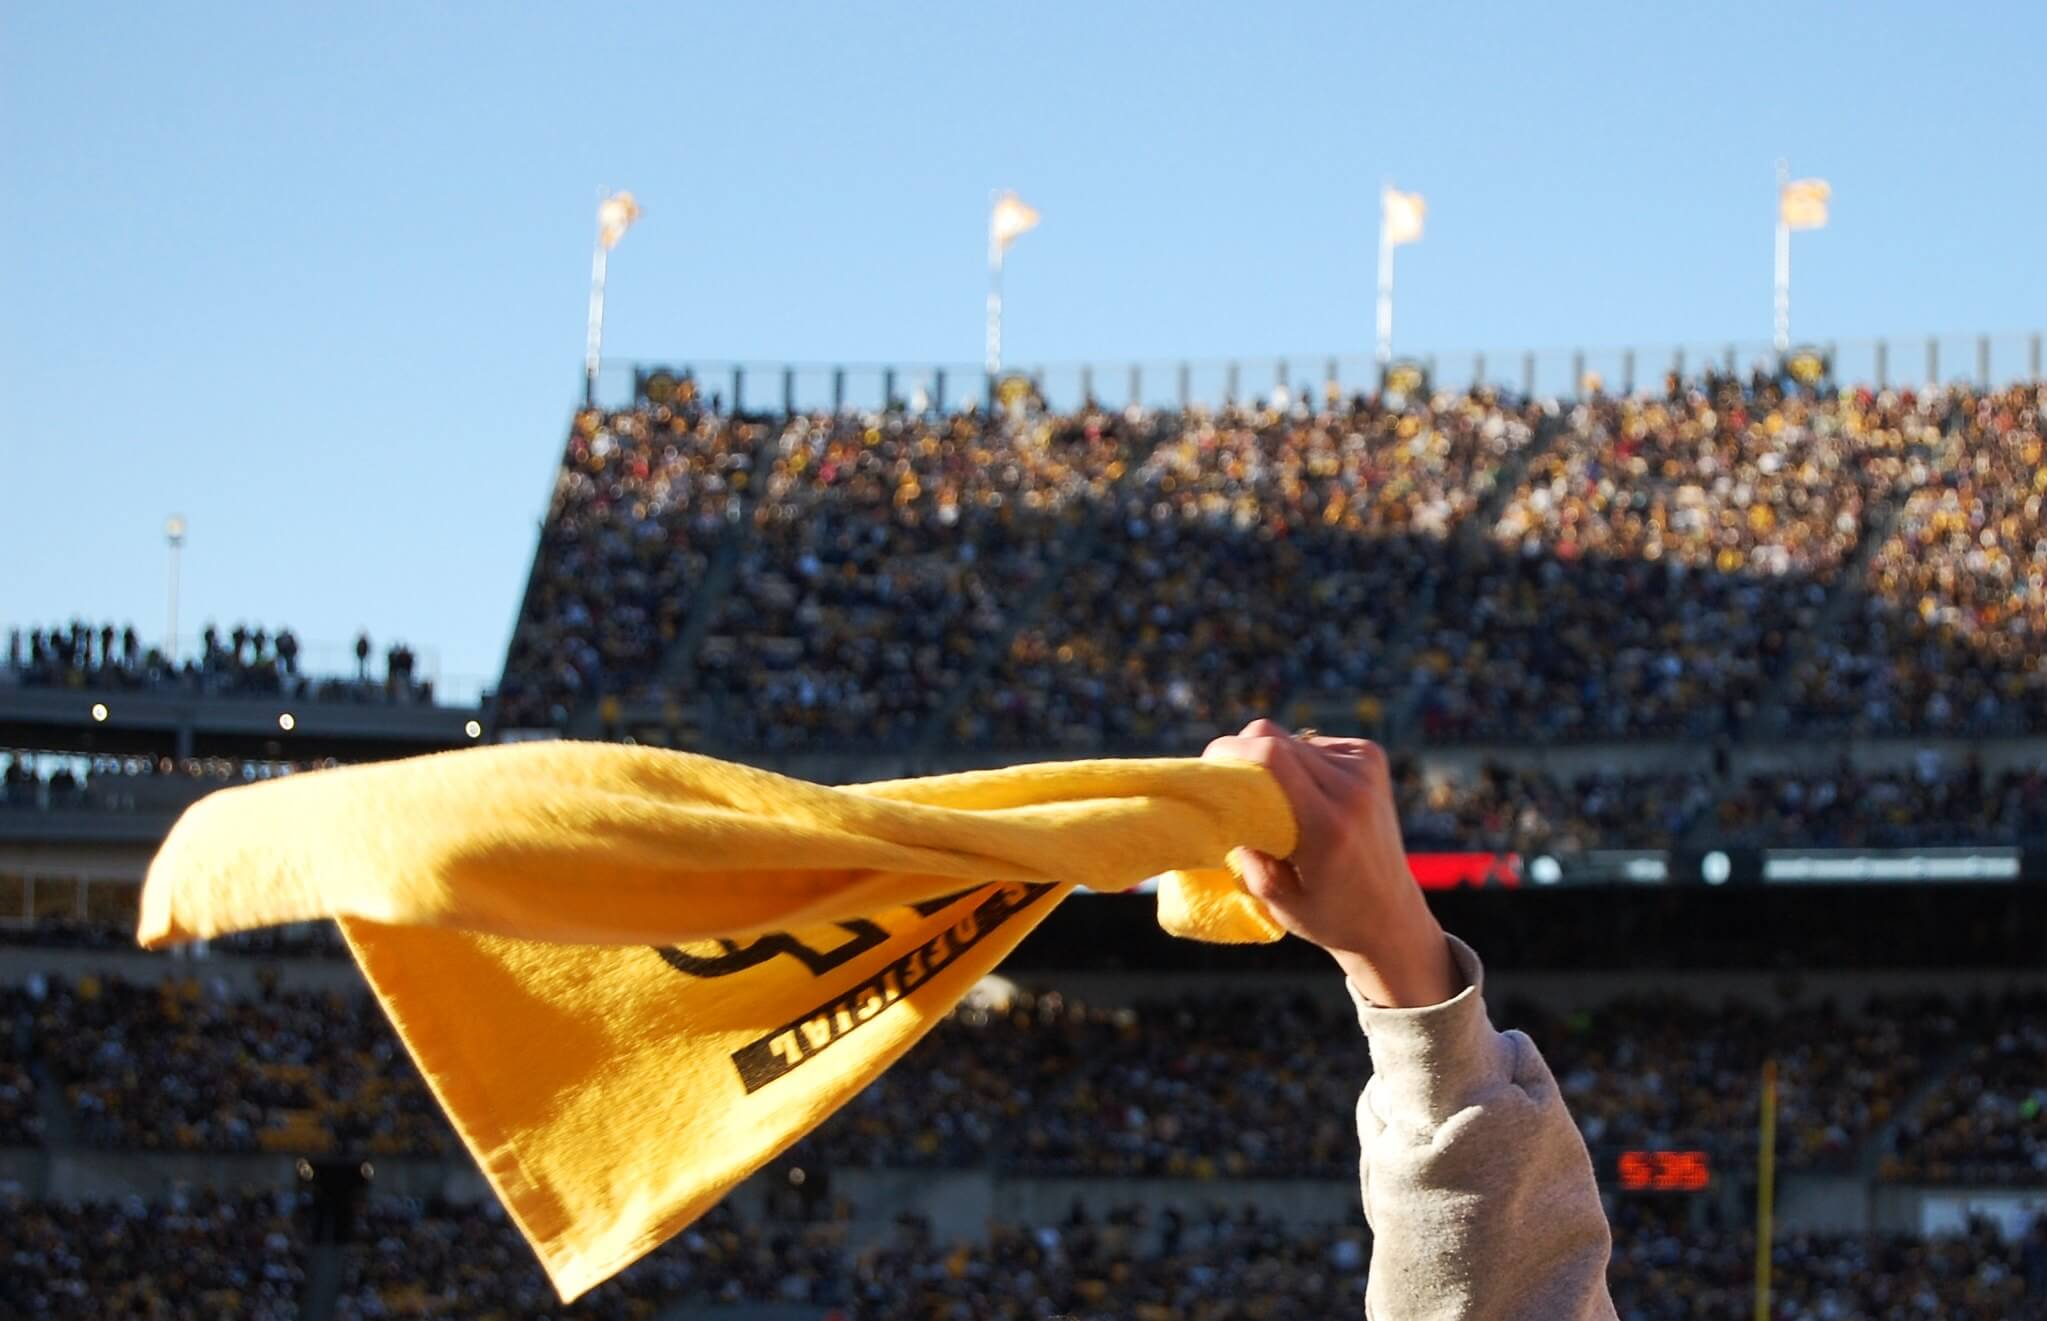 Steelers Terrible Towels tradition